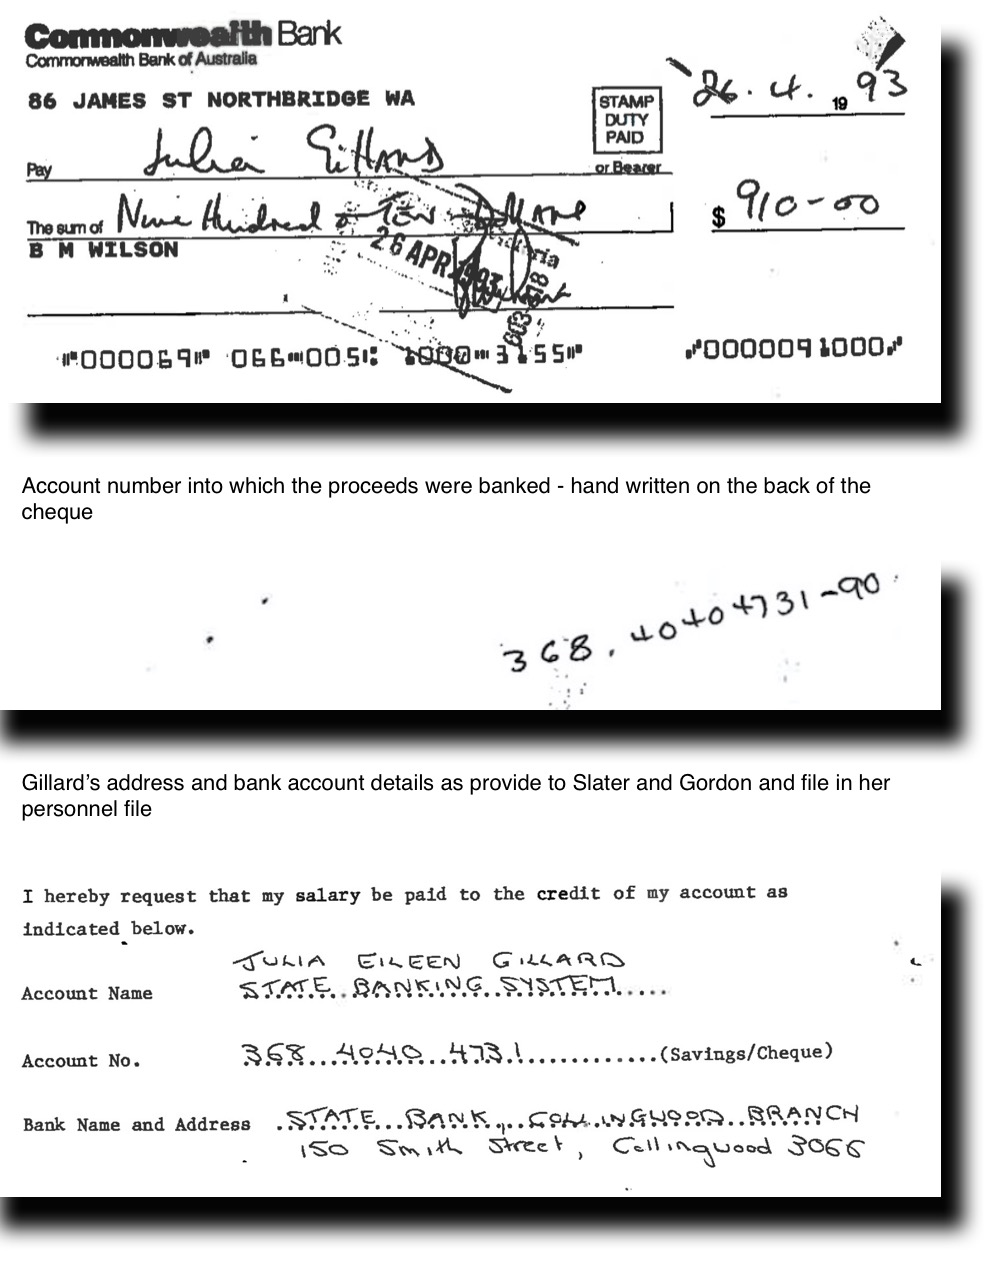 Direct evidence linking GILLARD to WILSON\'S corruptly obtained money ...